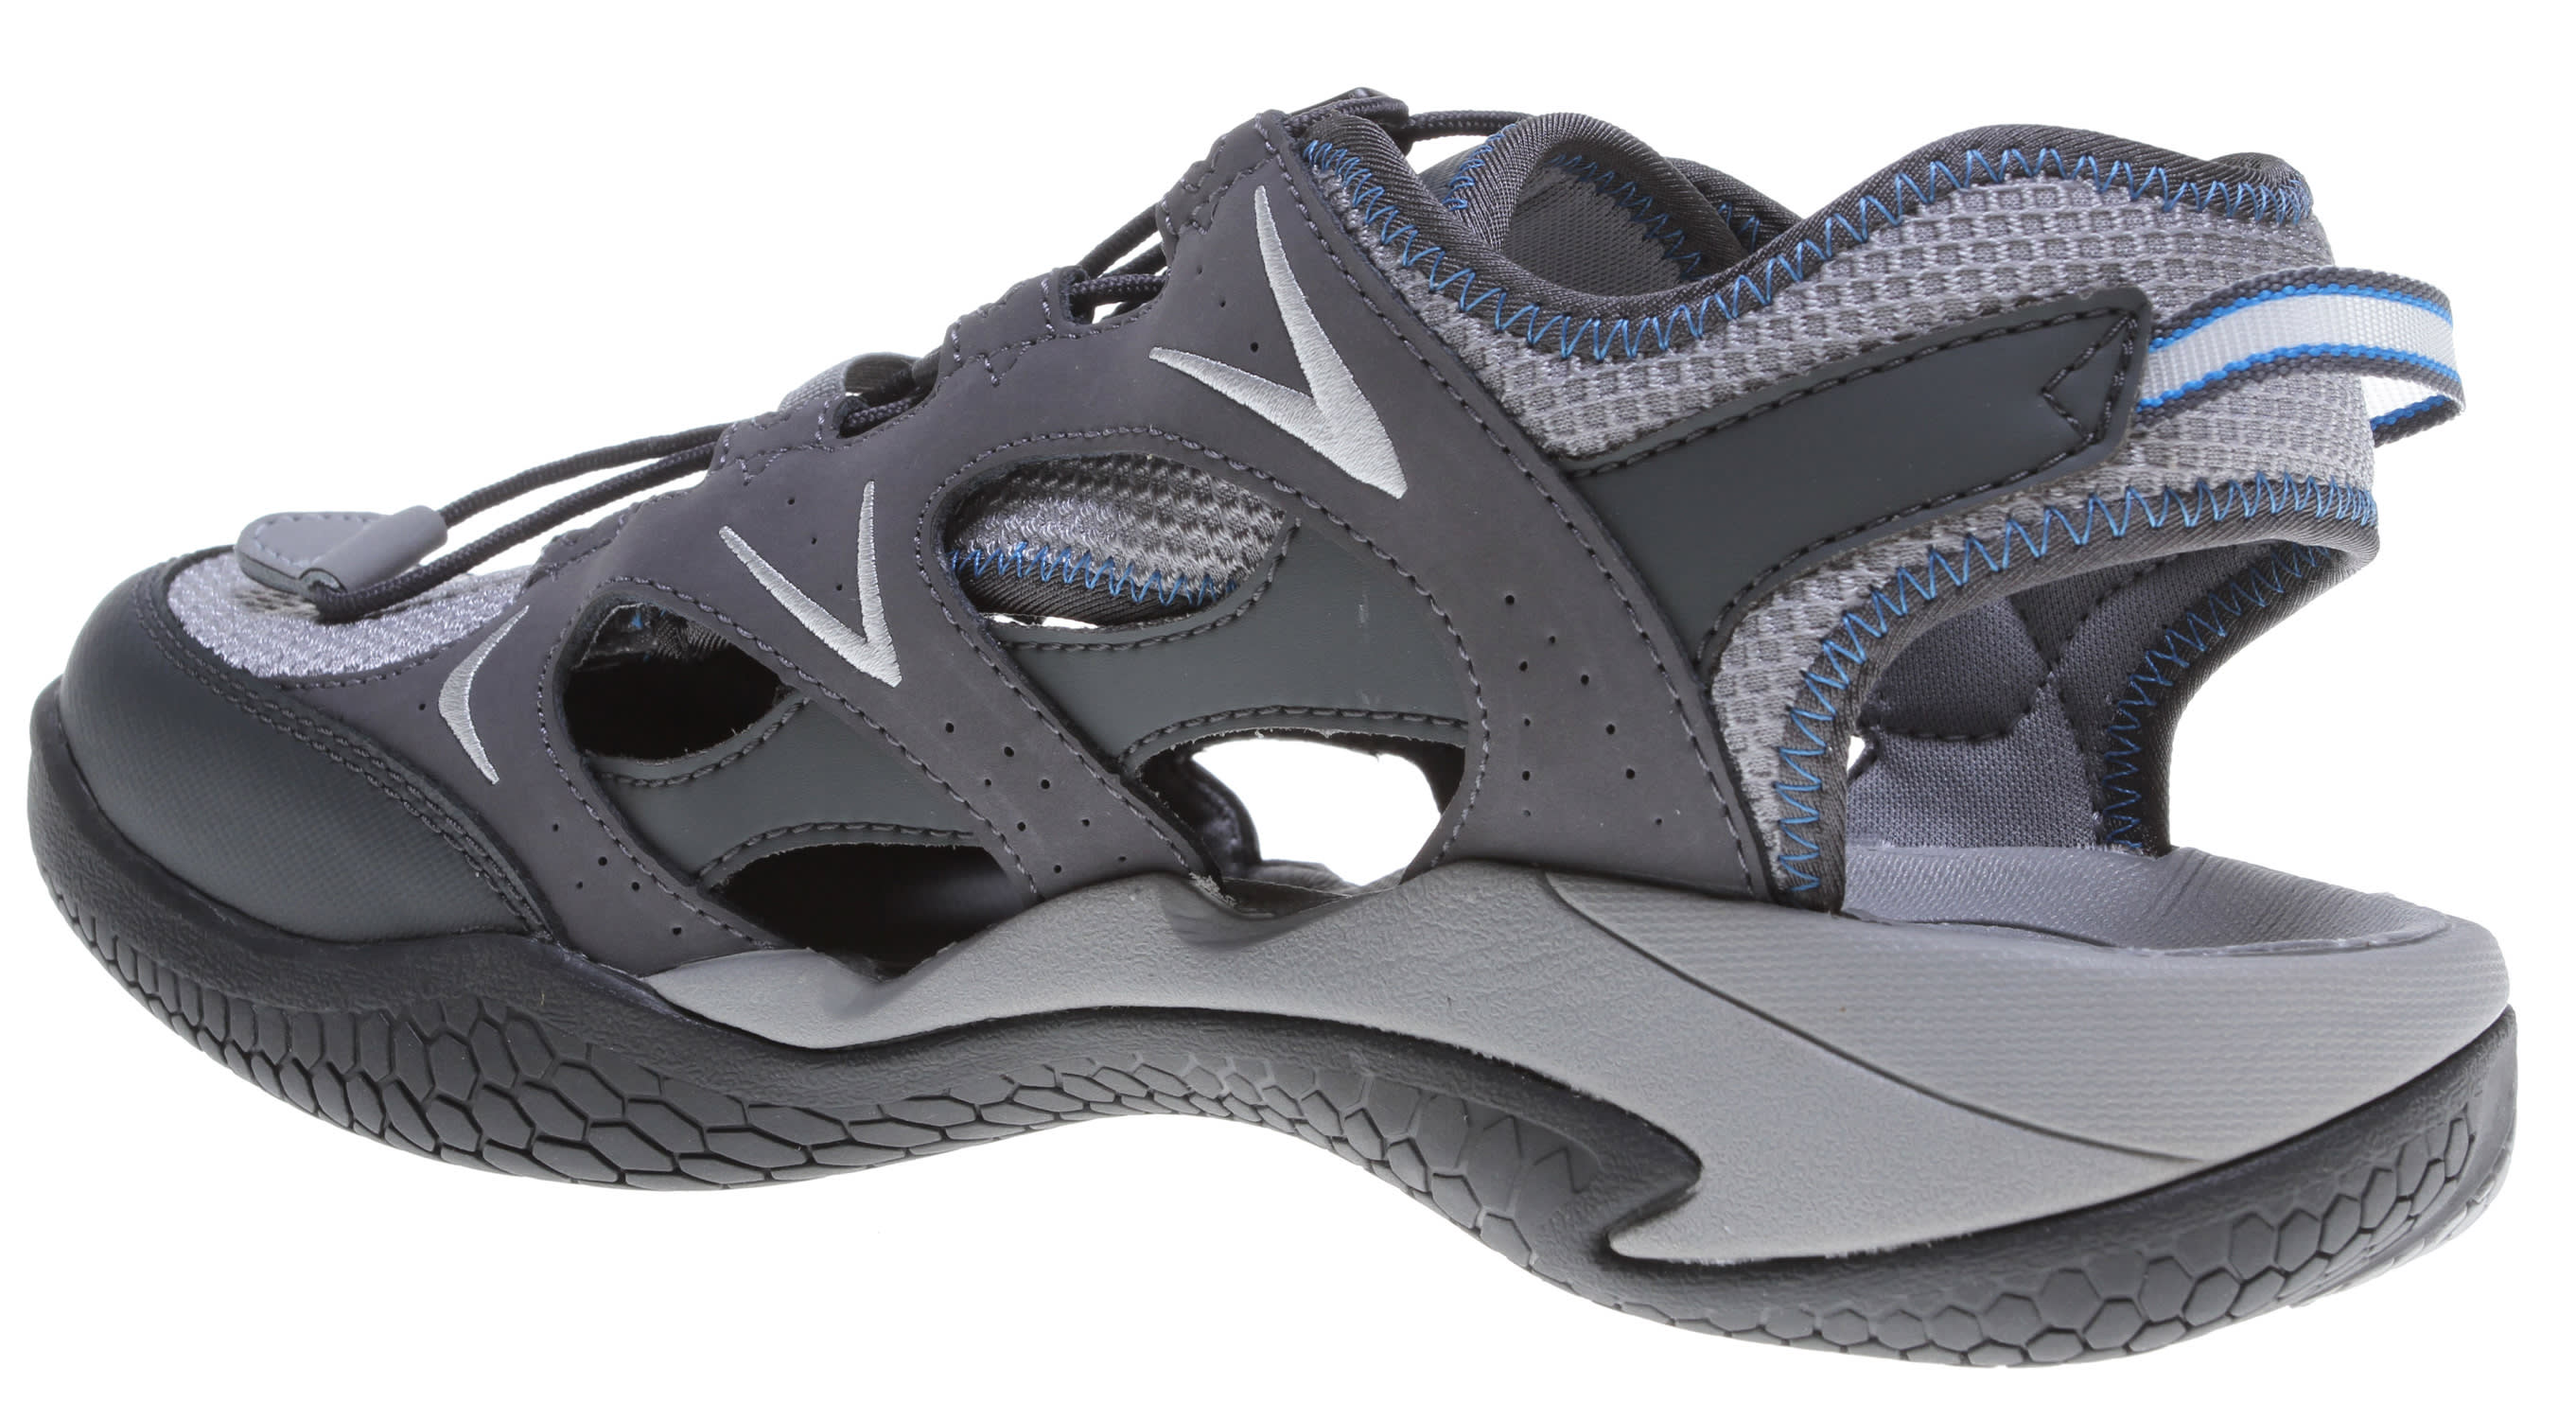 1d52c3346bad The North Face Hedgefrog II Water Shoes